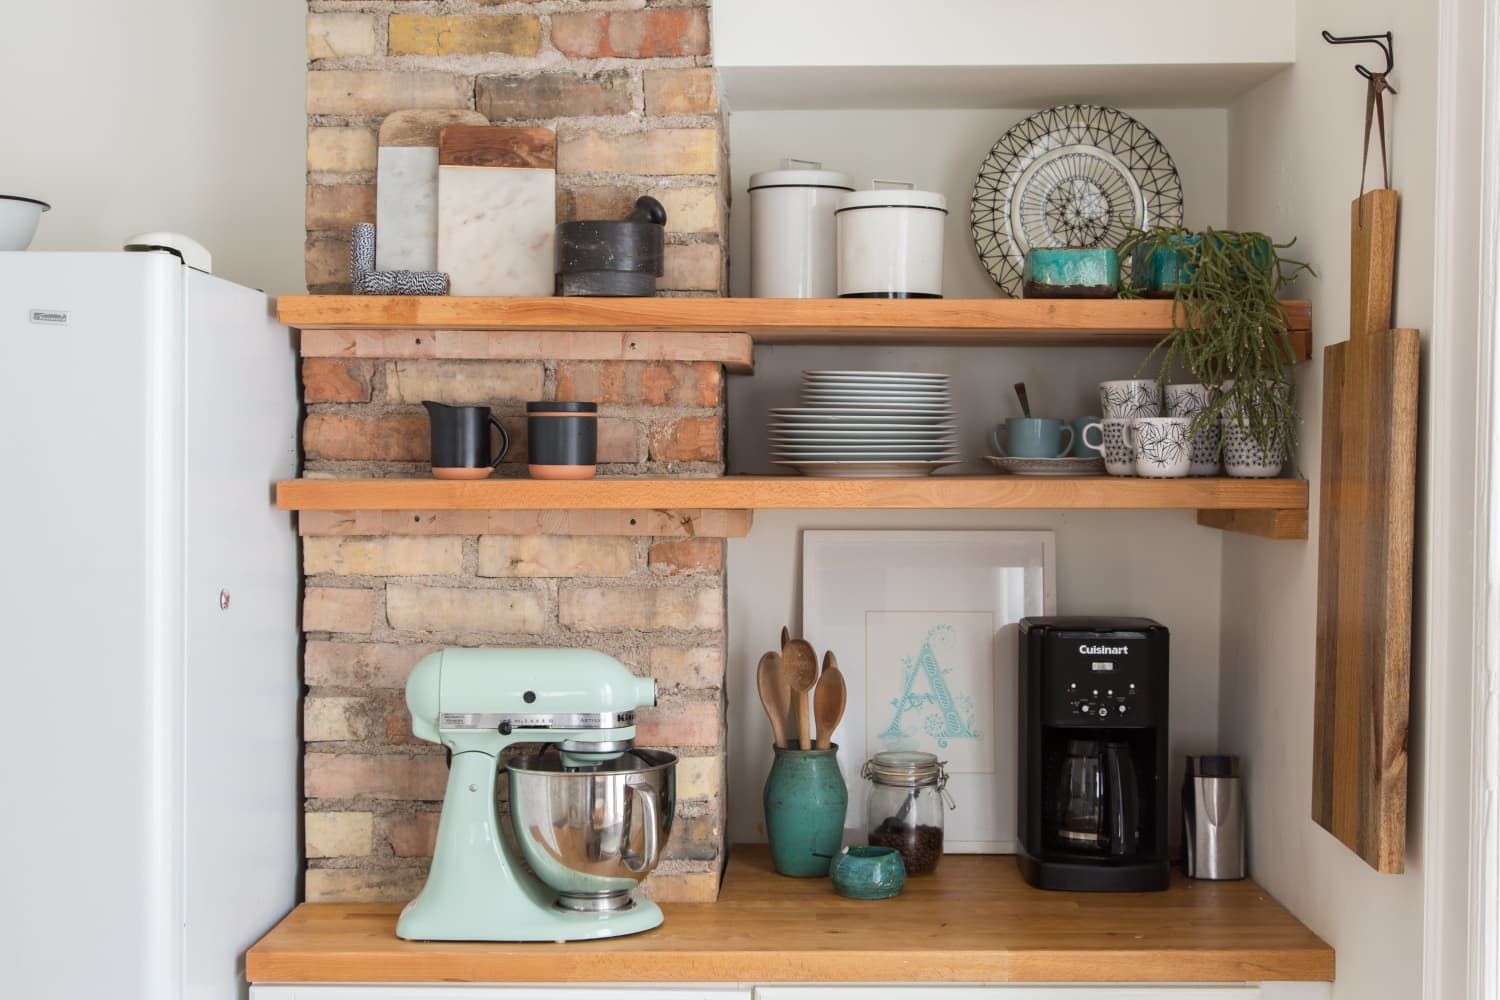 5 Small Electric Appliances Every Kitchen Should Have